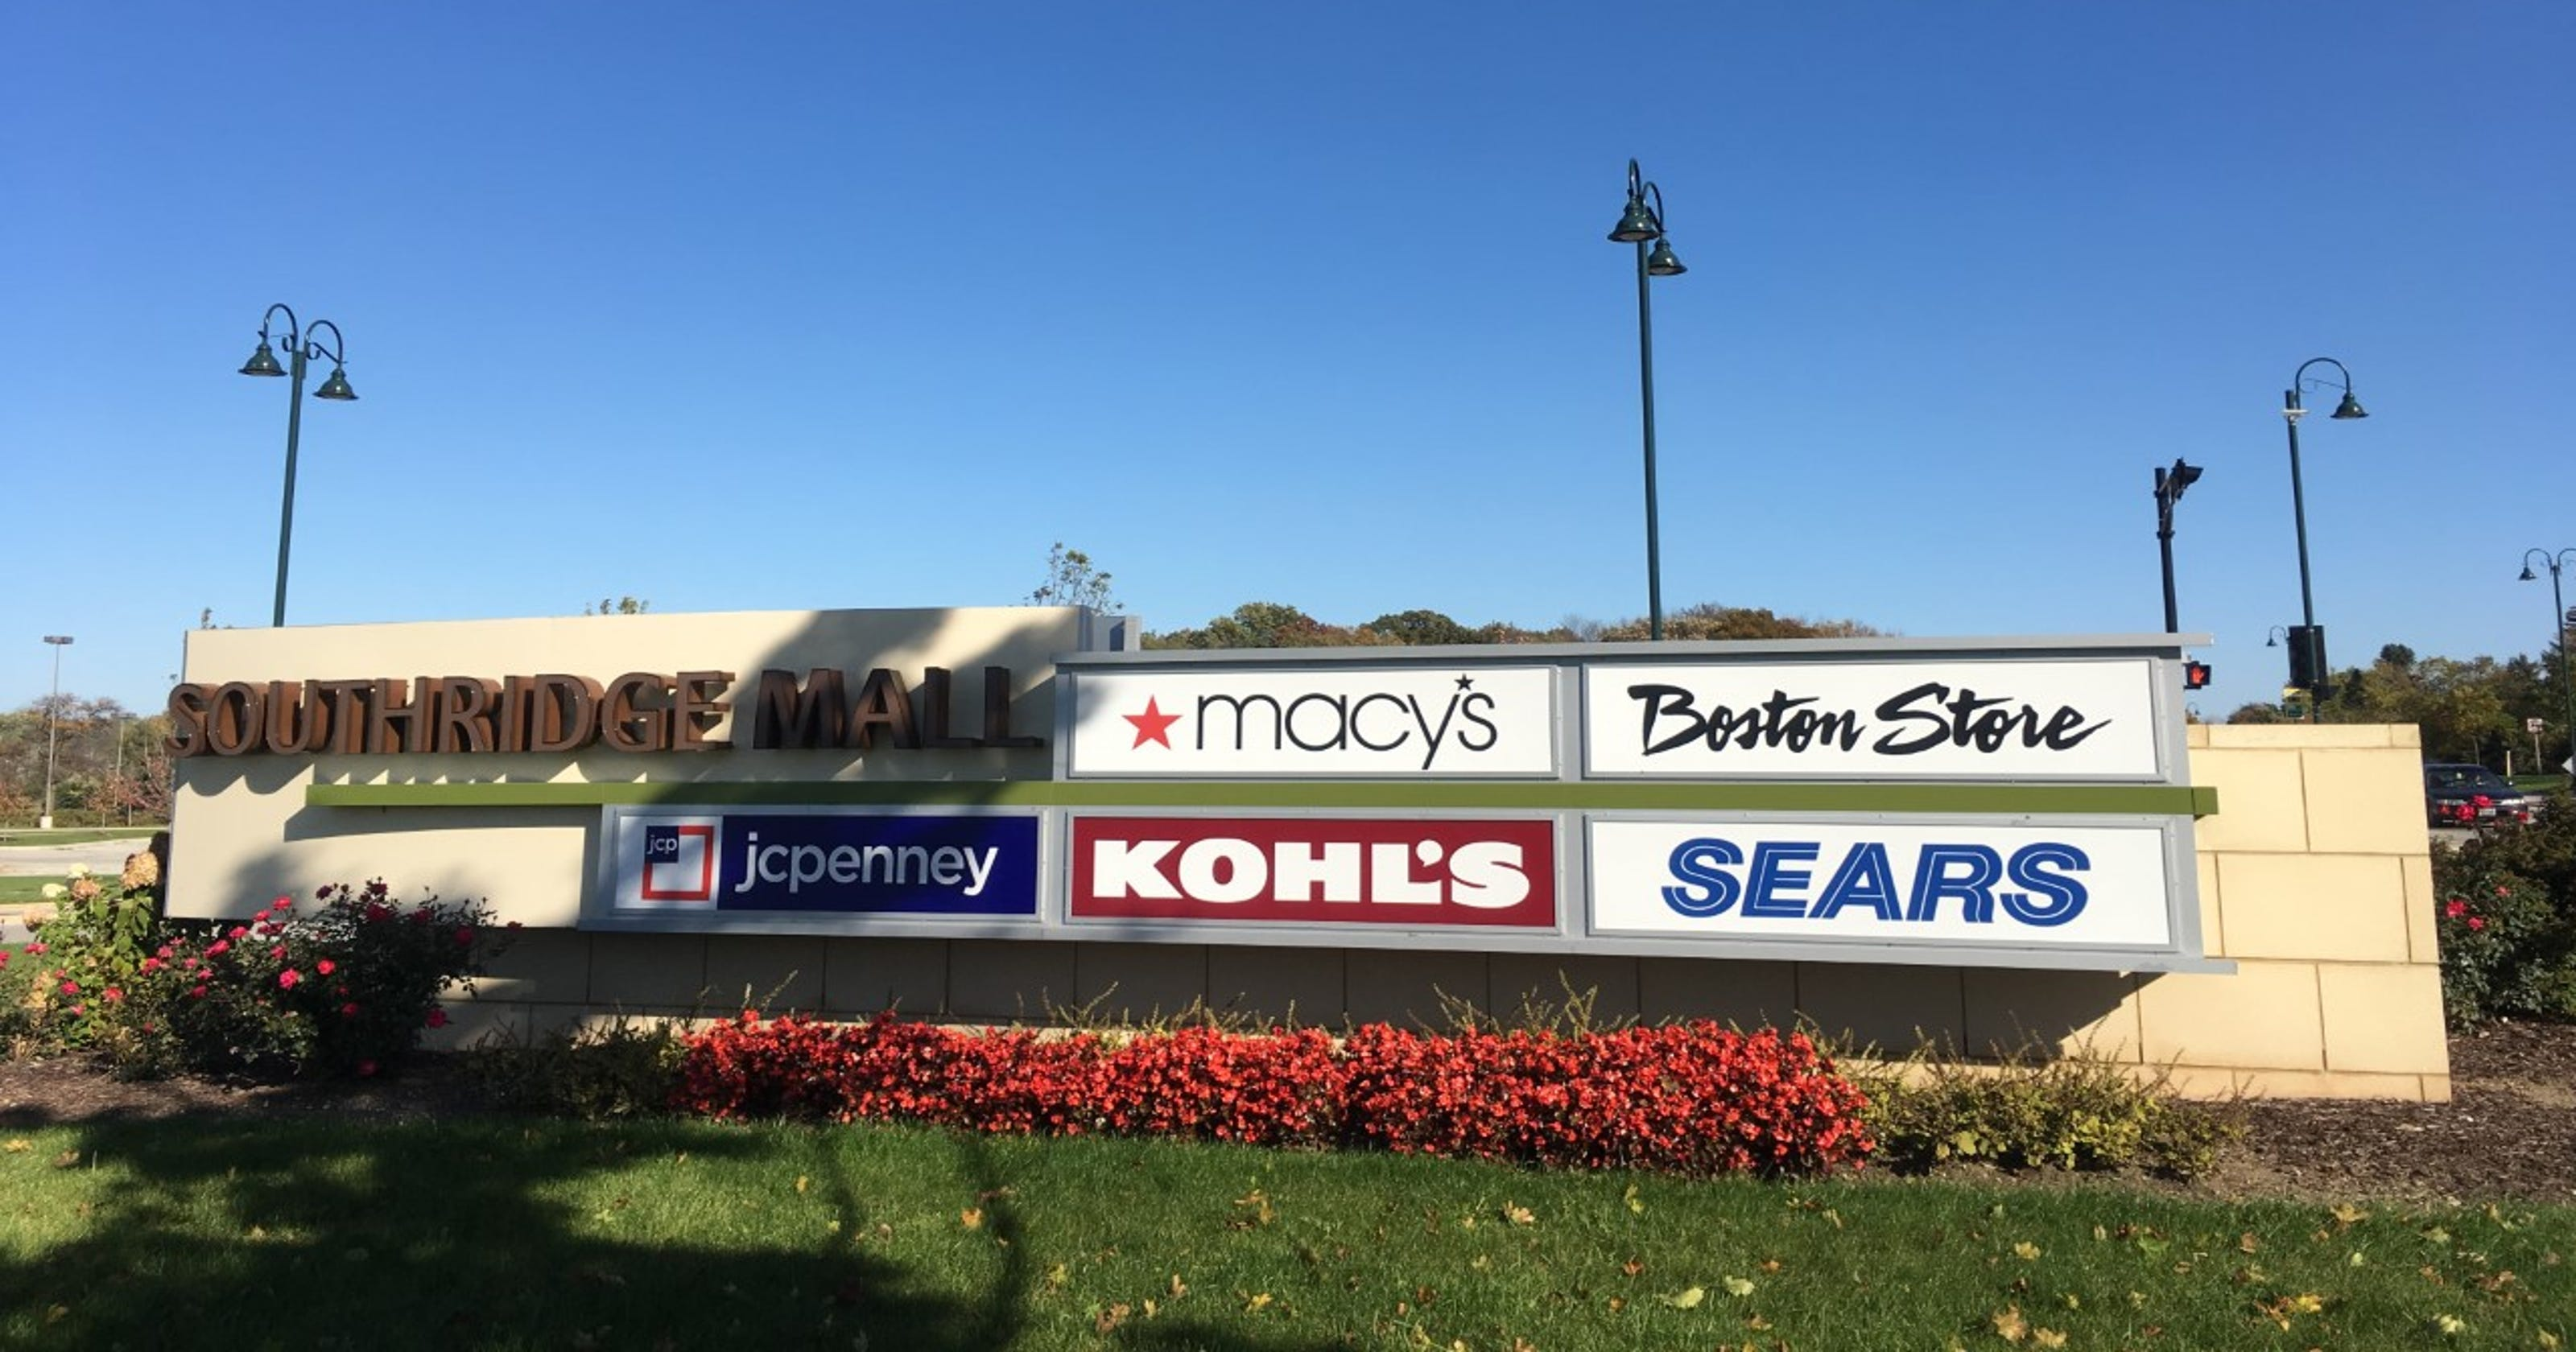 Kohls Will Leave Southridge Mall